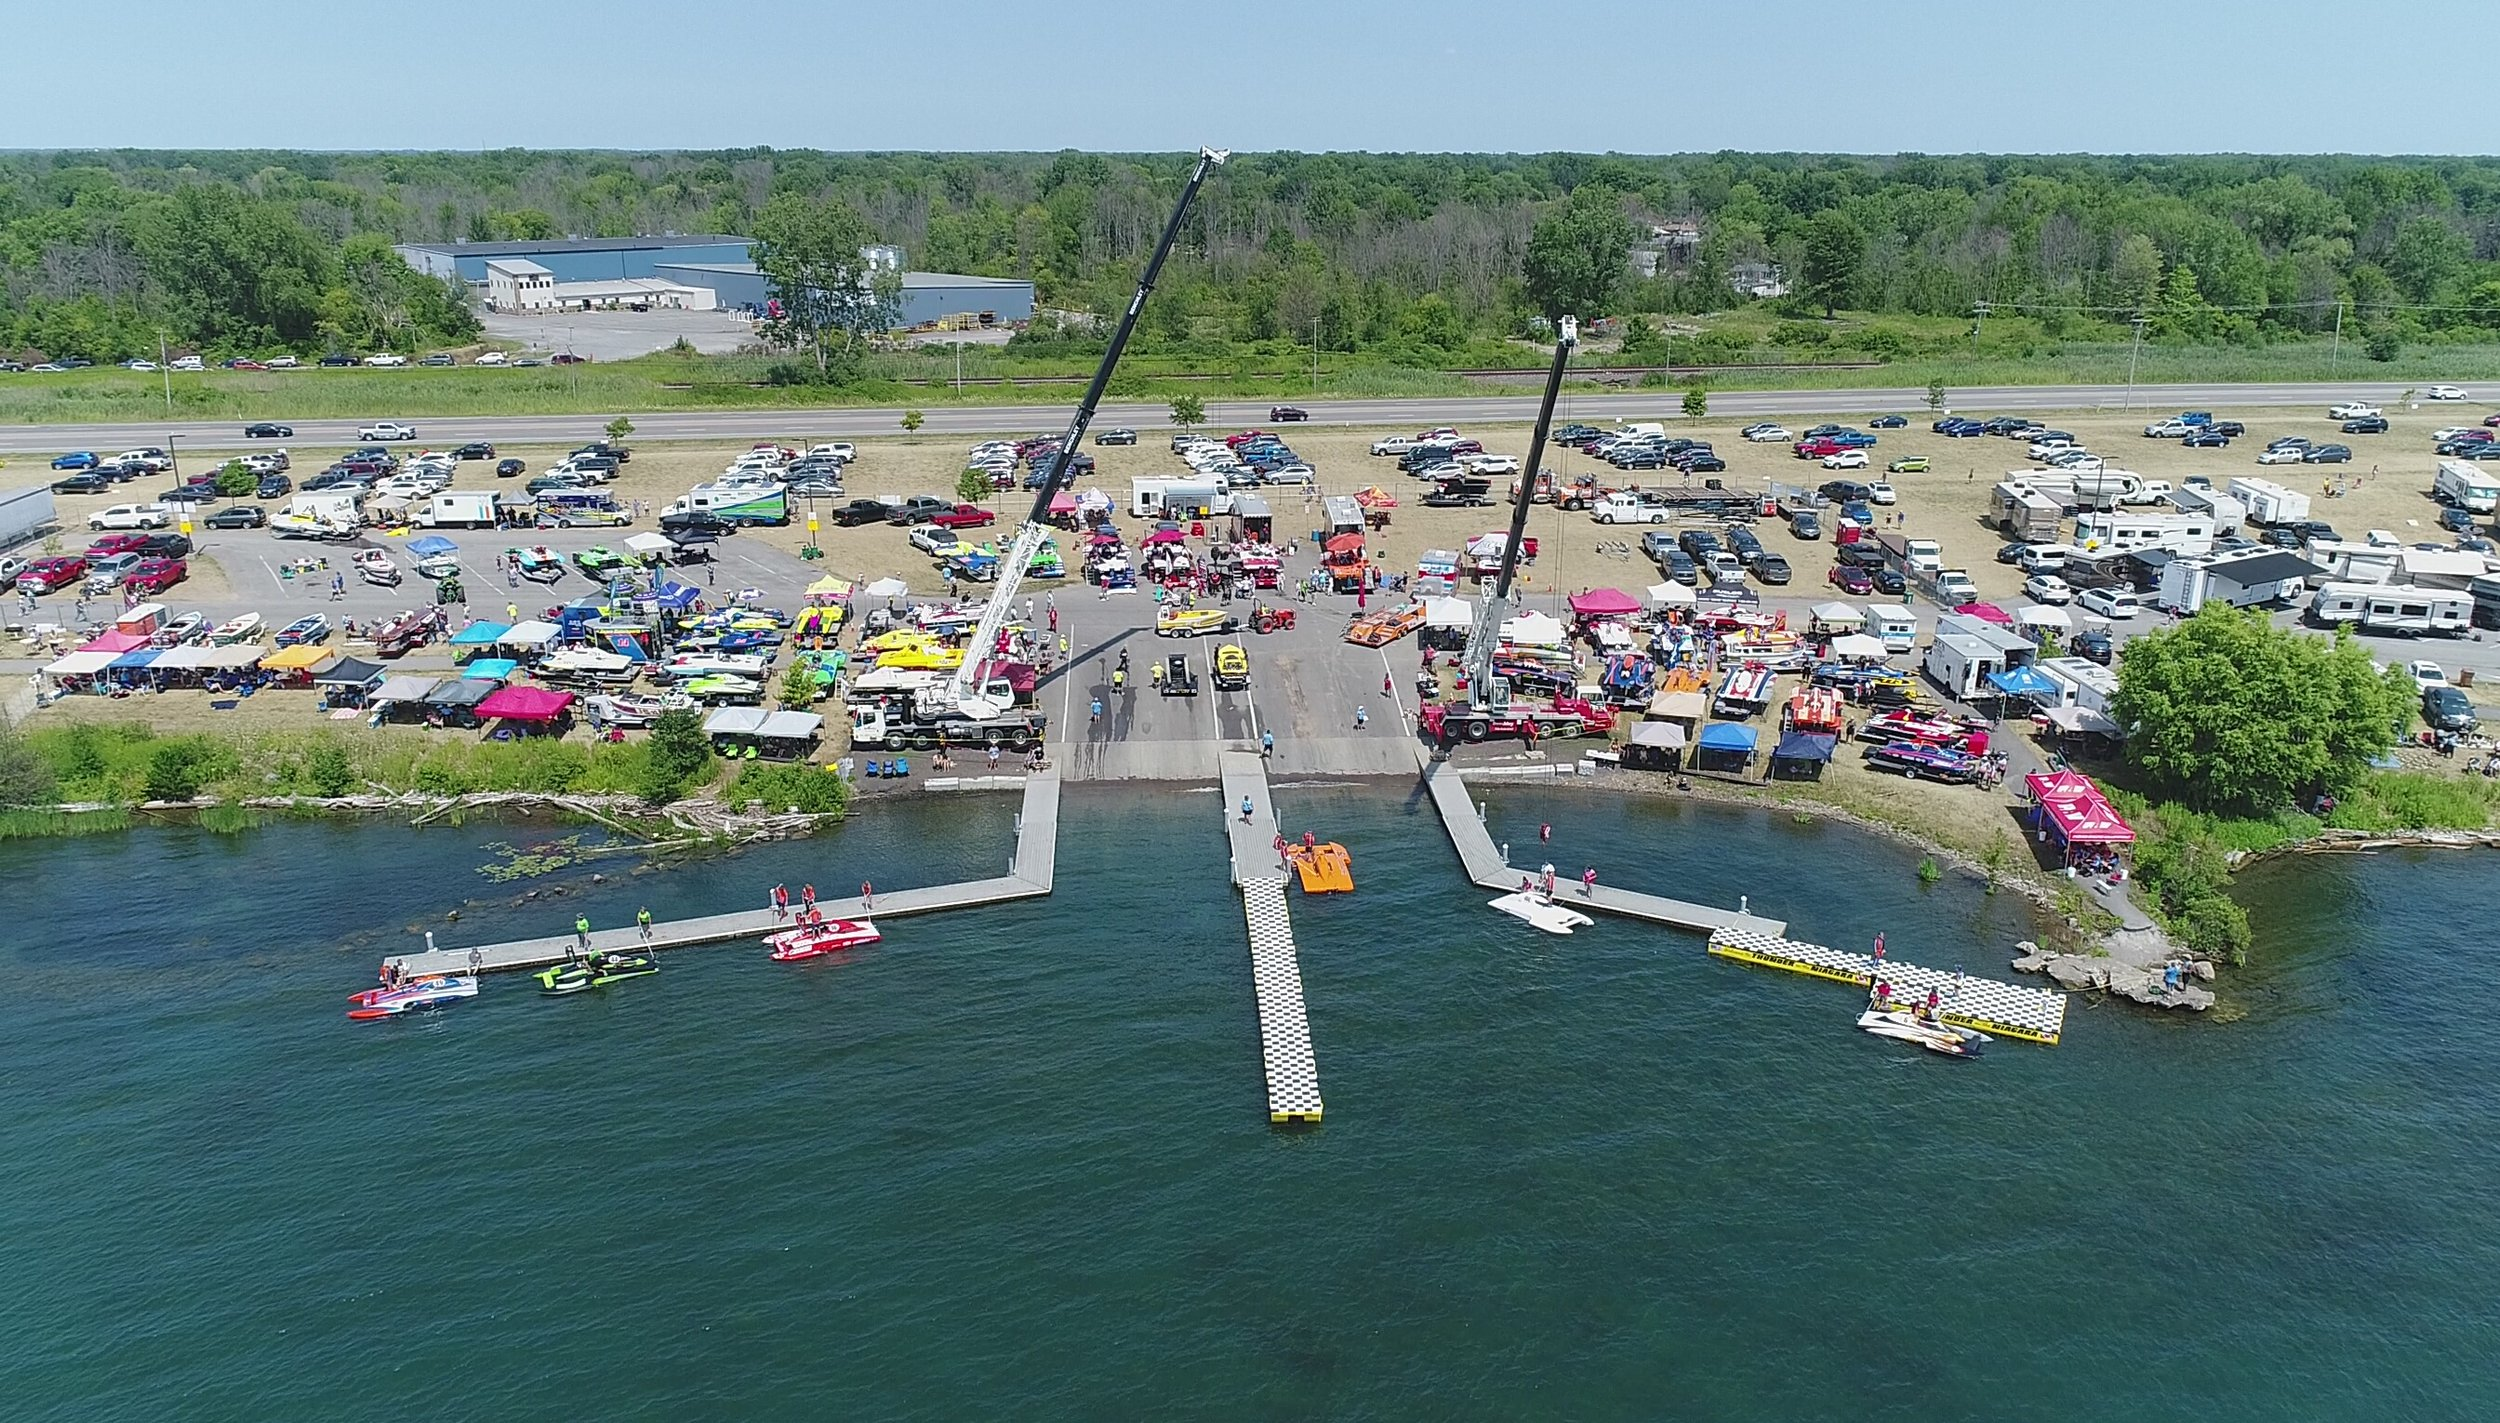 Aerial view of Thunder on the Niagara from one of EagleHawk's drones.